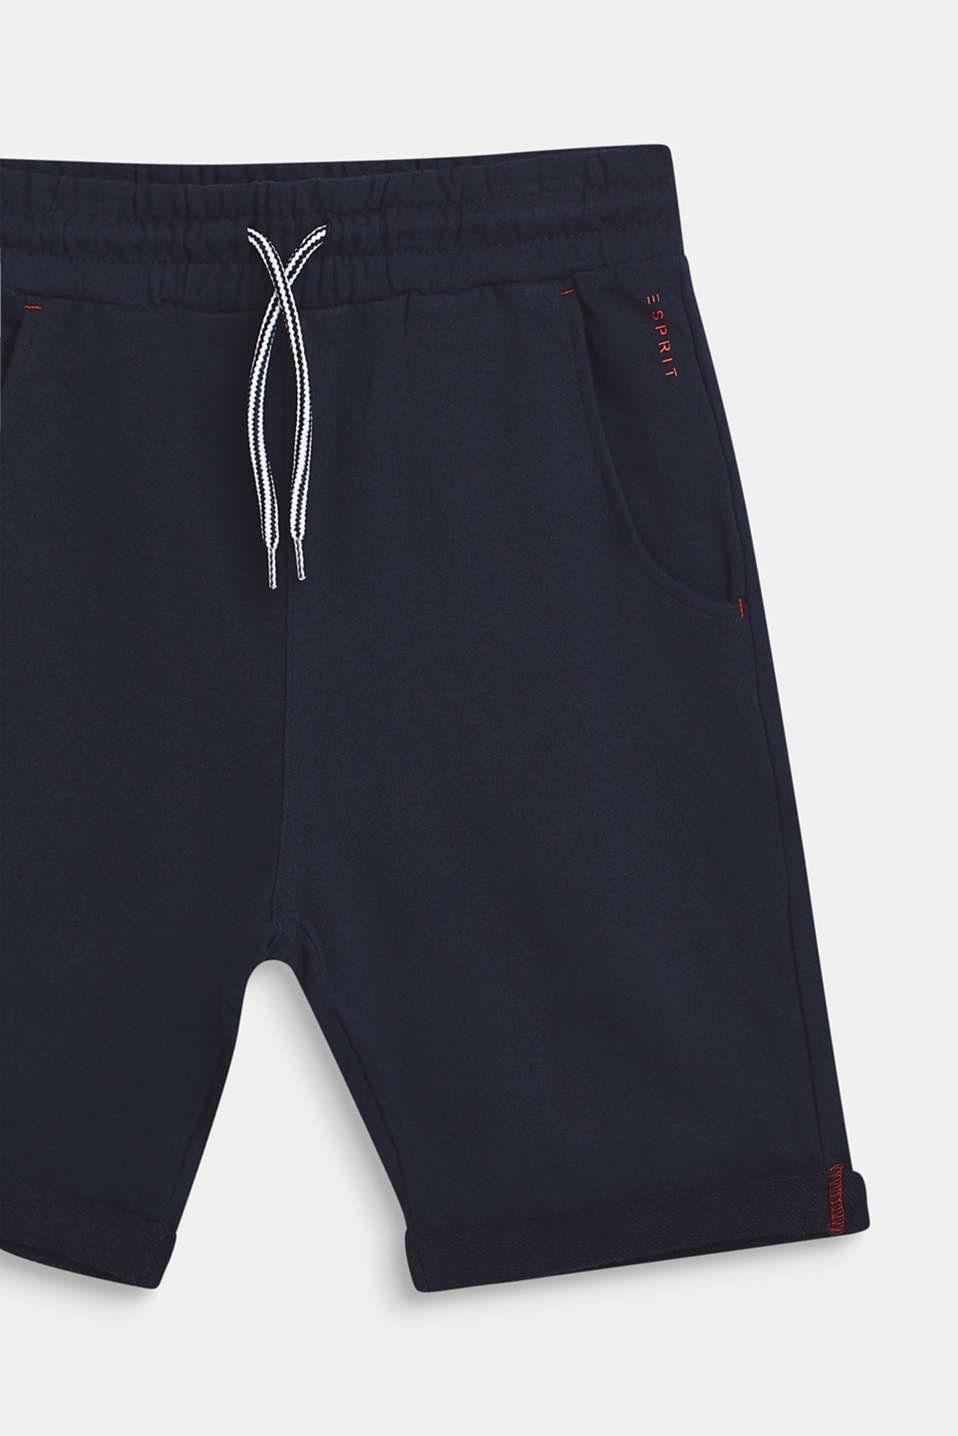 Shorts knitted, LCNAVY BLUE, detail image number 2